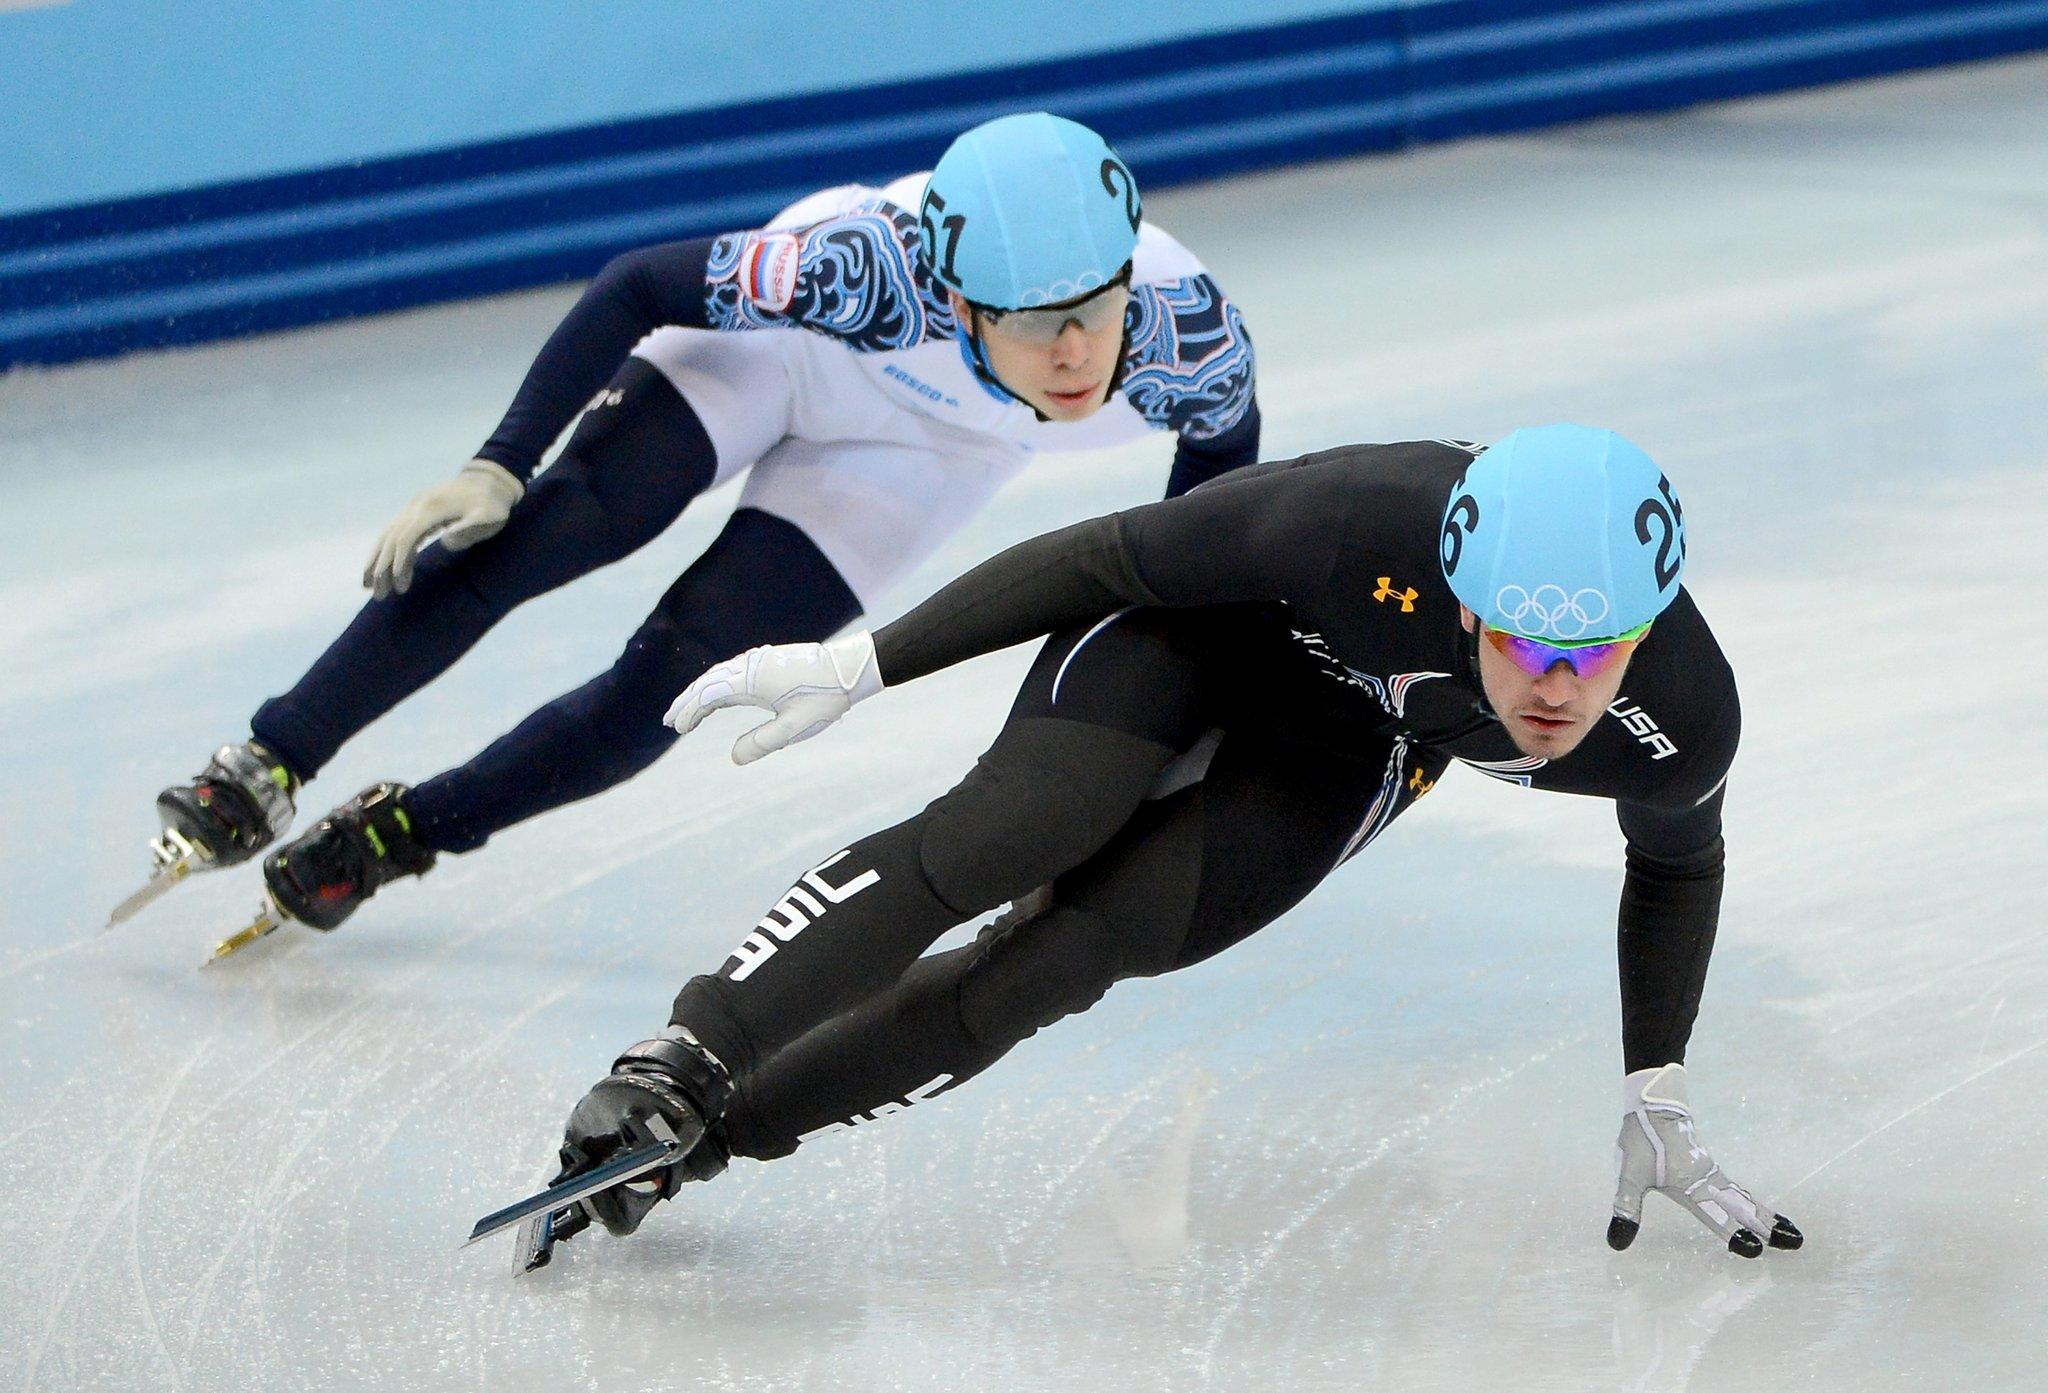 The USA's Eduardo Alvarez leads Russia's Semen Elistratov during the short track men's 5000m relay final at the Iceberg Skating Palace at the Winter Olympics in Sochi.